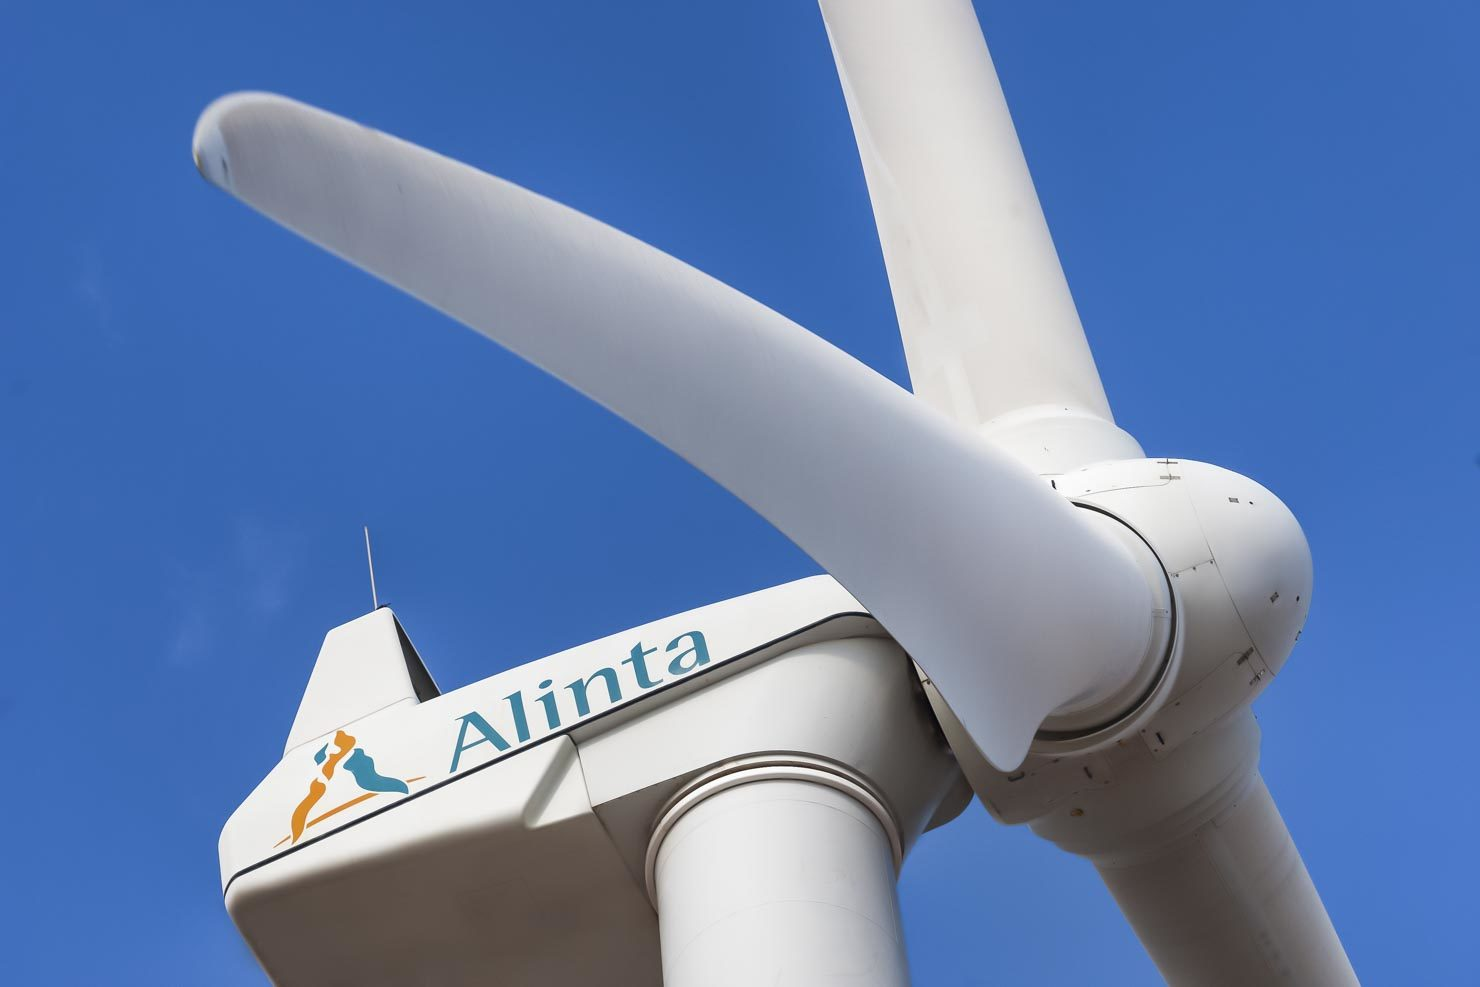 Alinta wind turbine